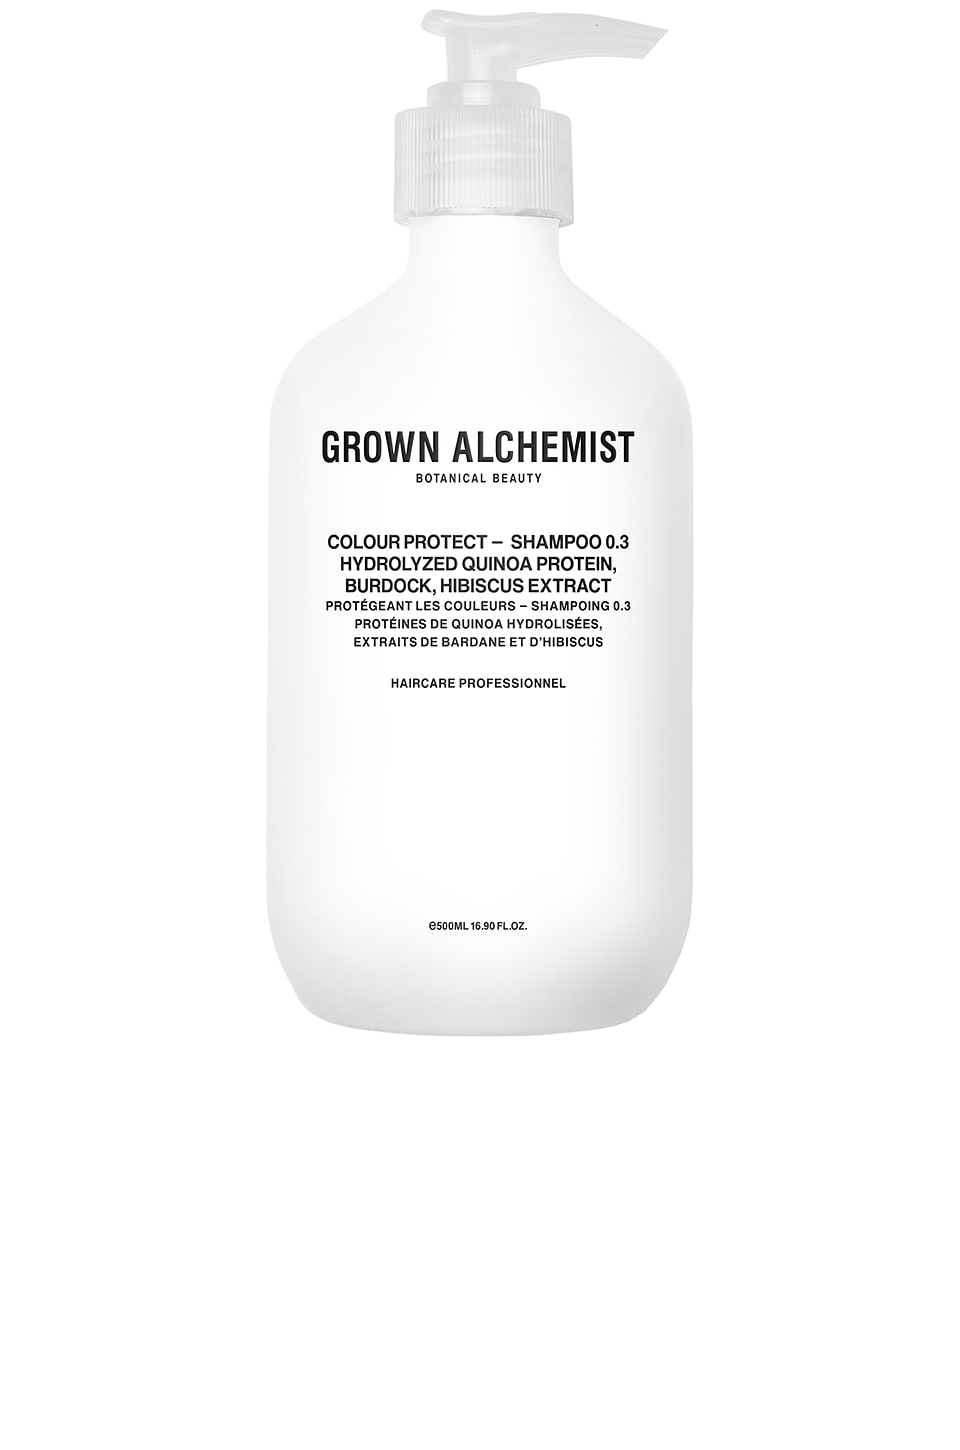 Grown Alchemist Colour-Protect Shampoo 0.3 in Hydrolyzed Quinoa Protein & Burdock & Hibiscus Extract